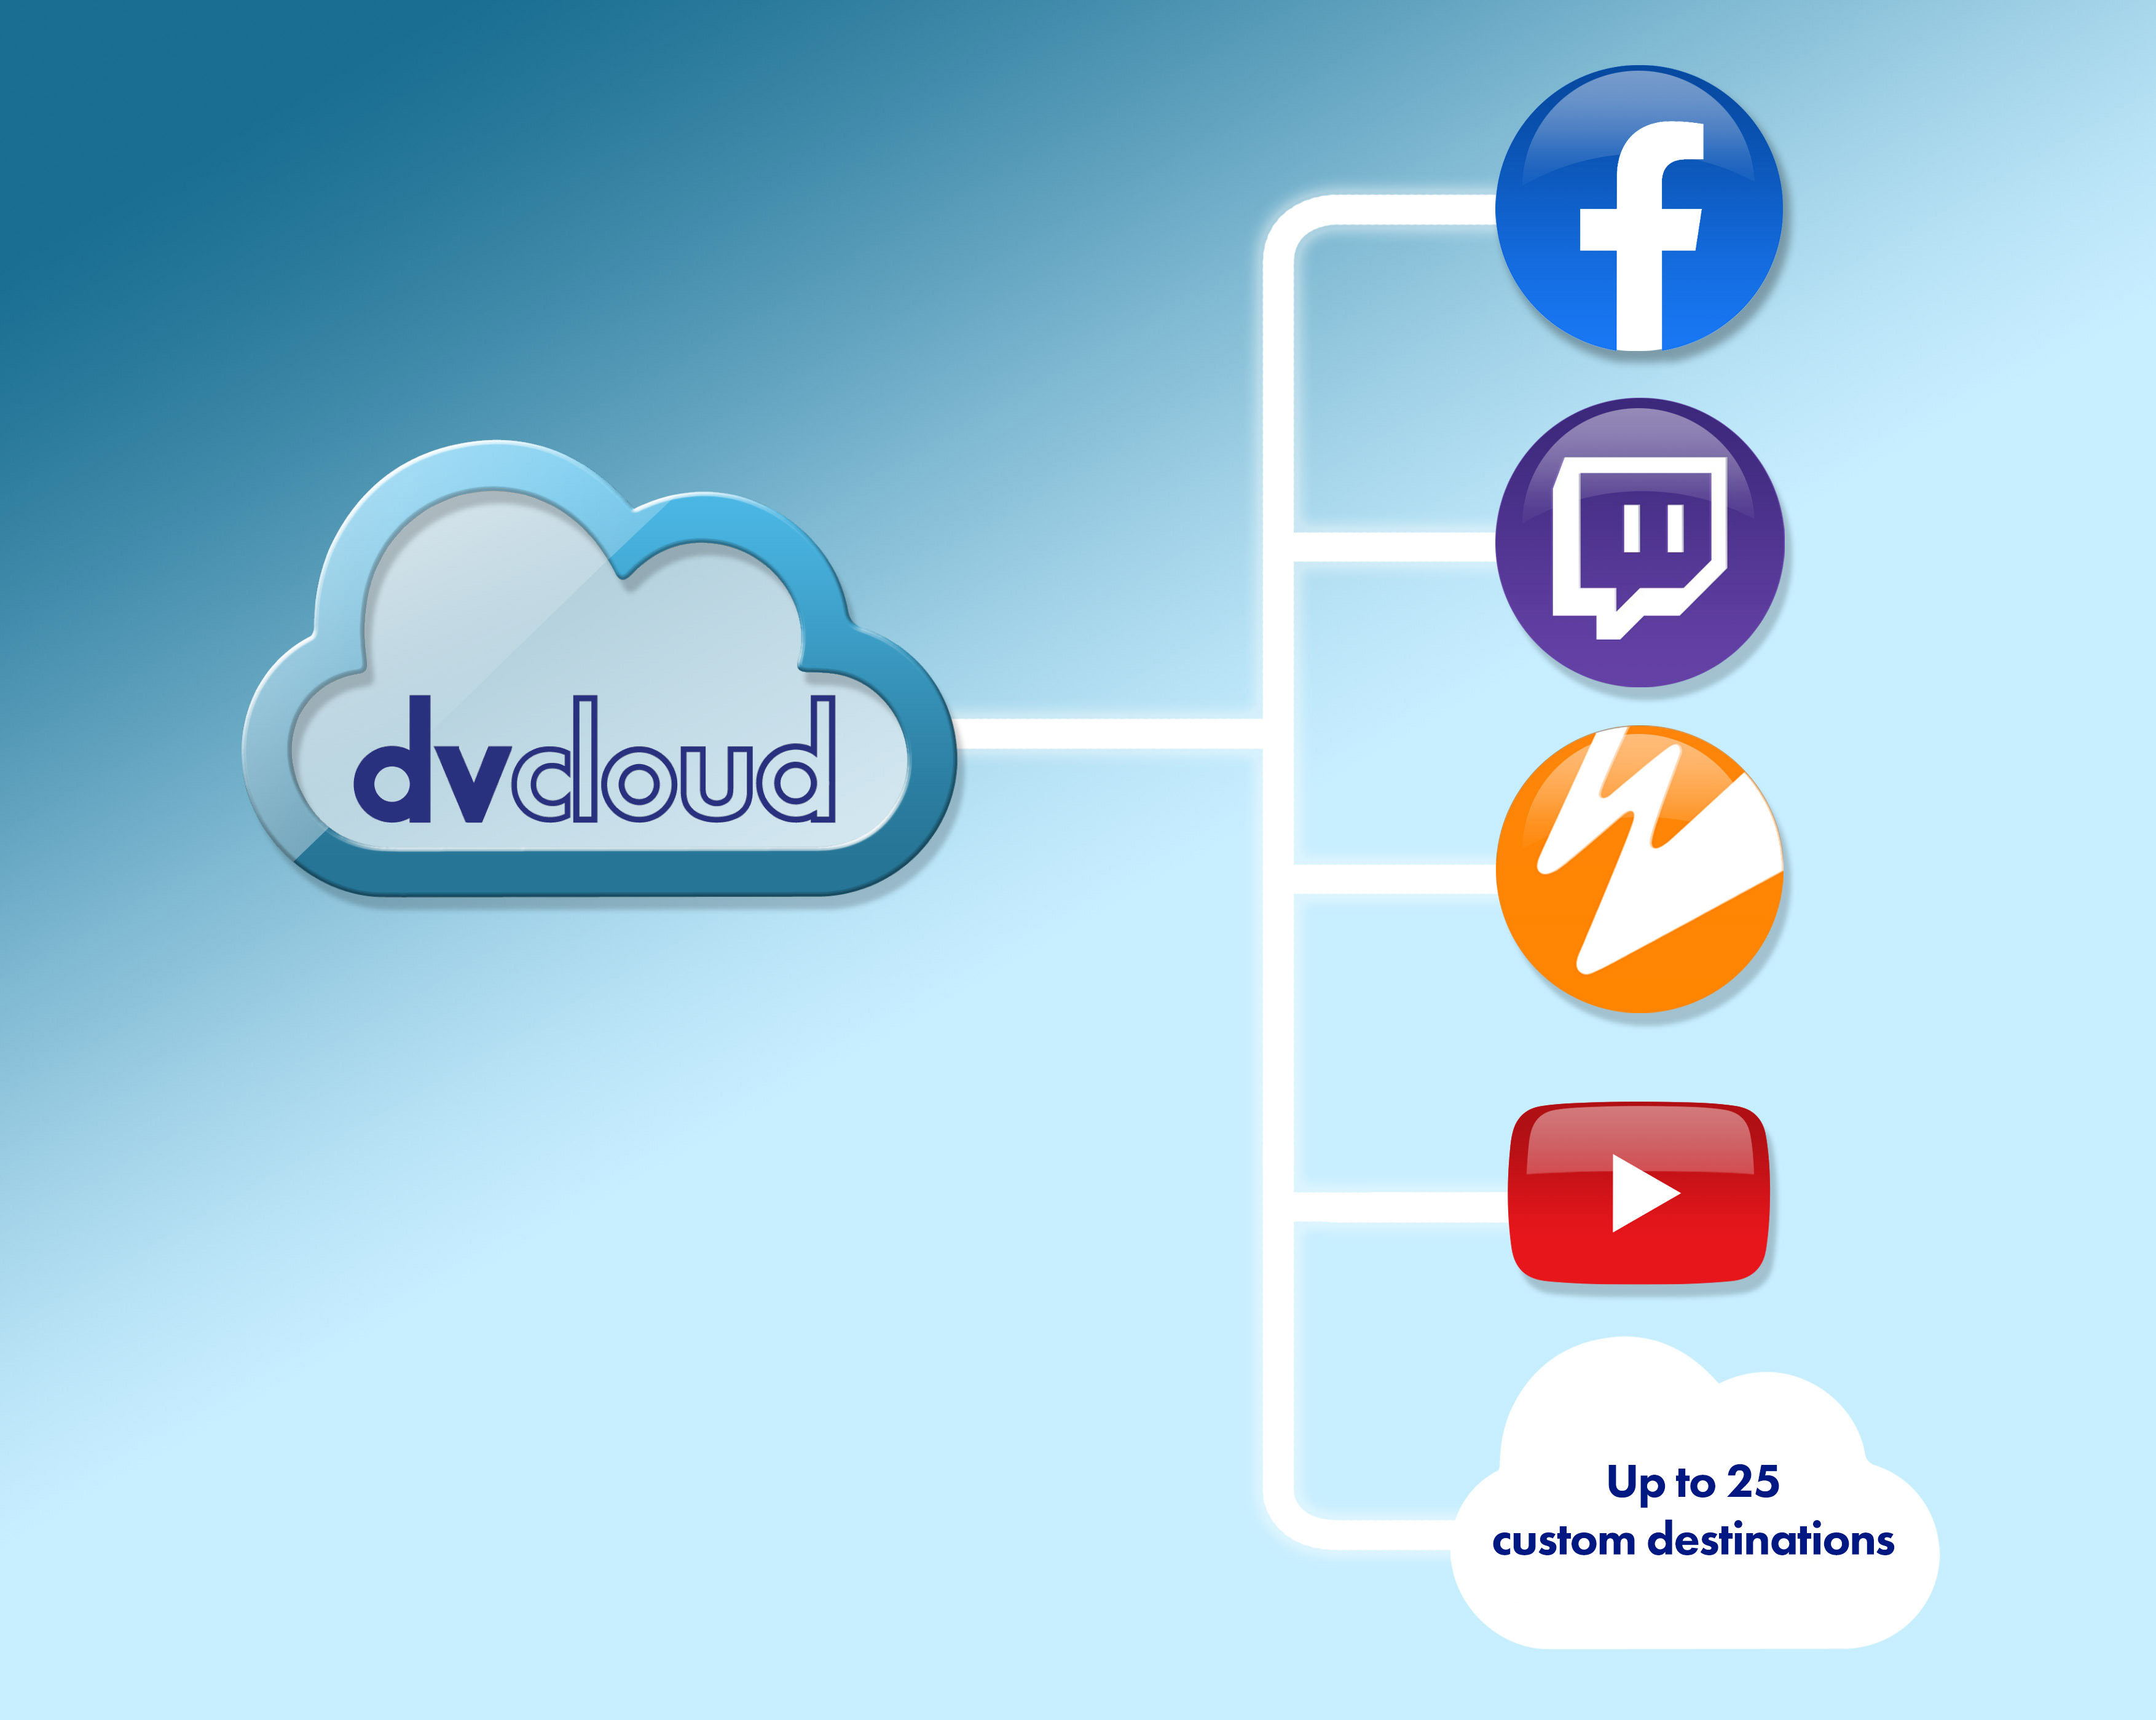 Introducing dvCloud, streaming made easy